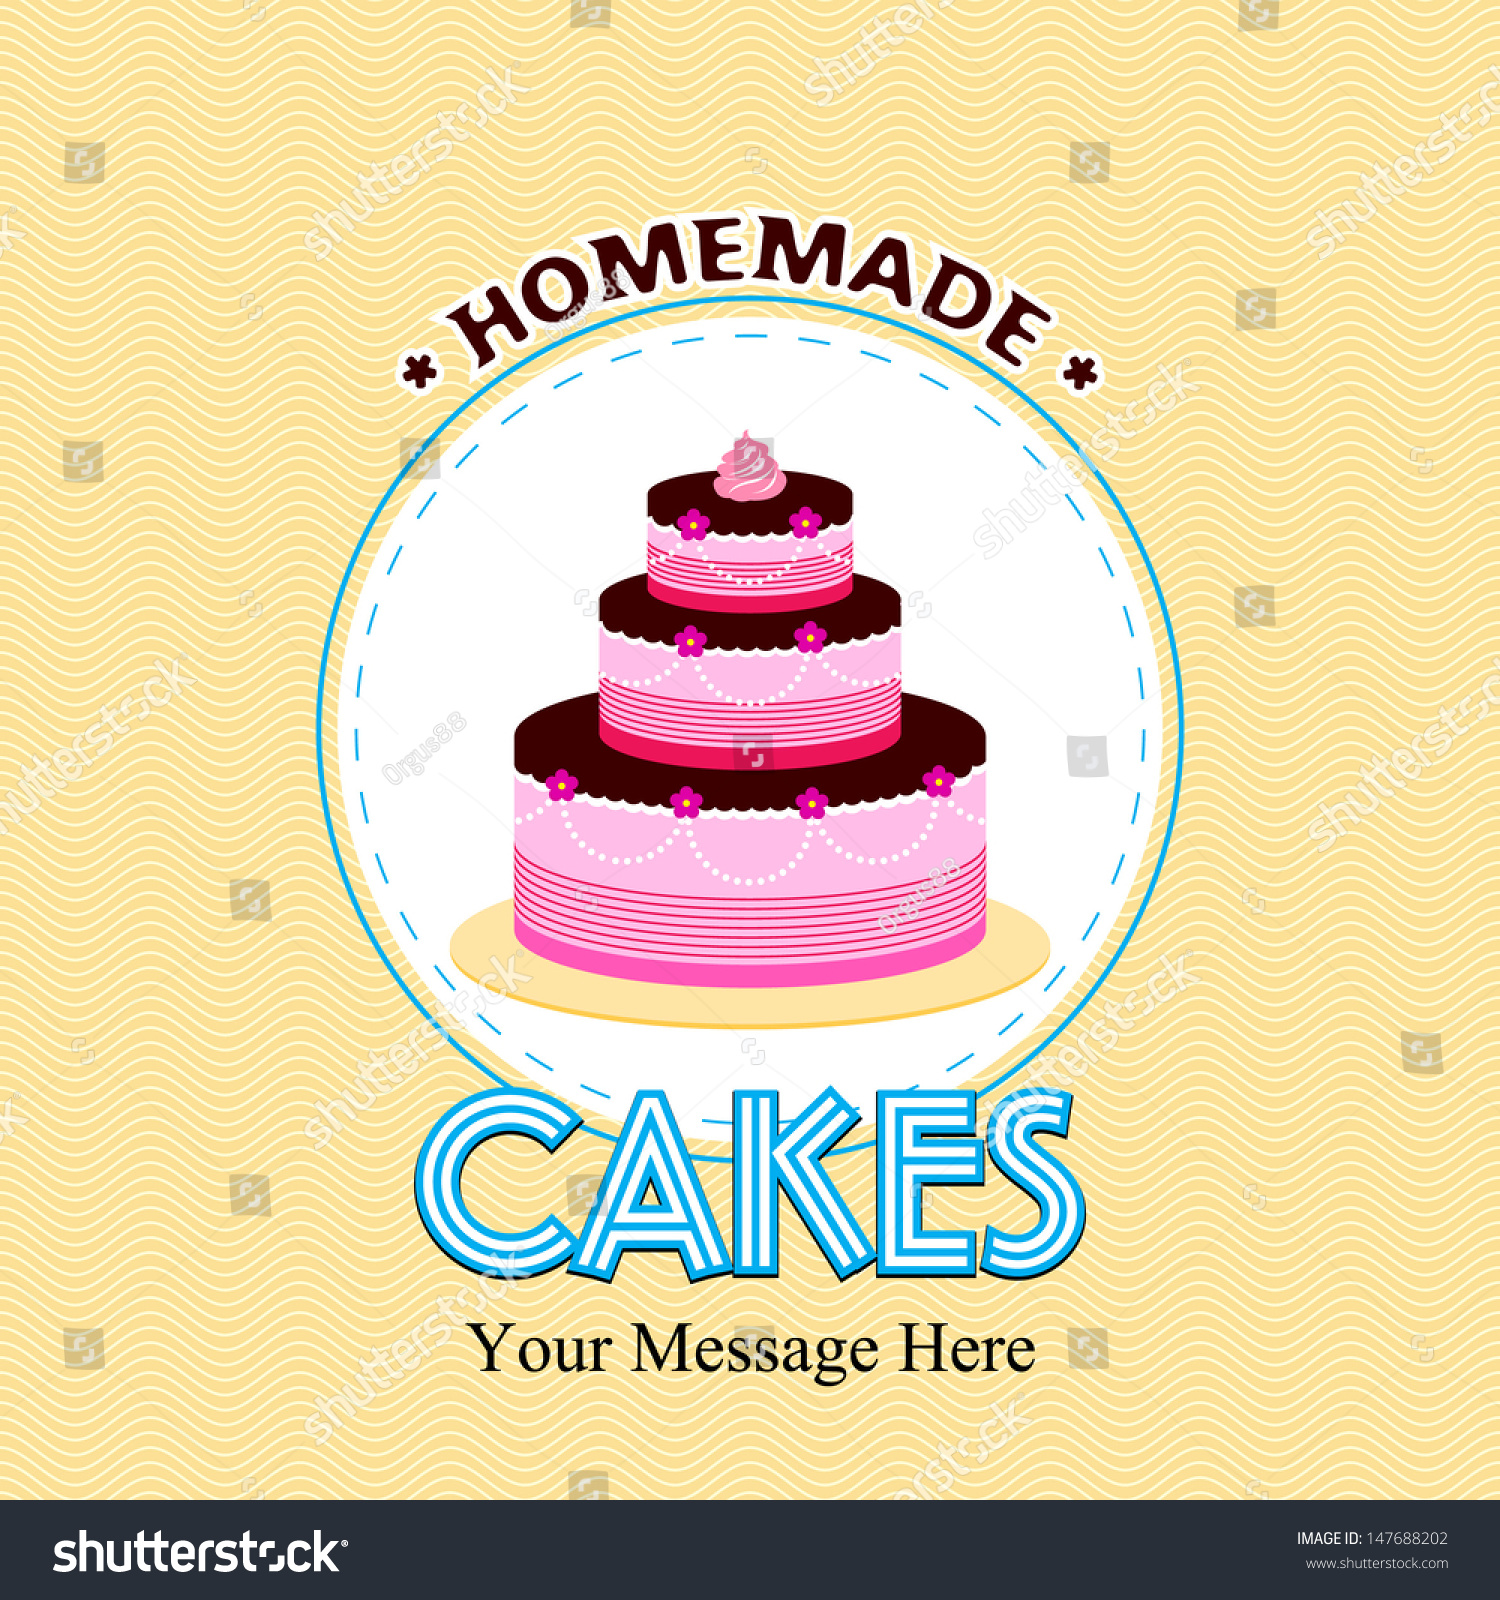 Vintage Home Made Cakes Vector Happy Stock Vector Royalty Free